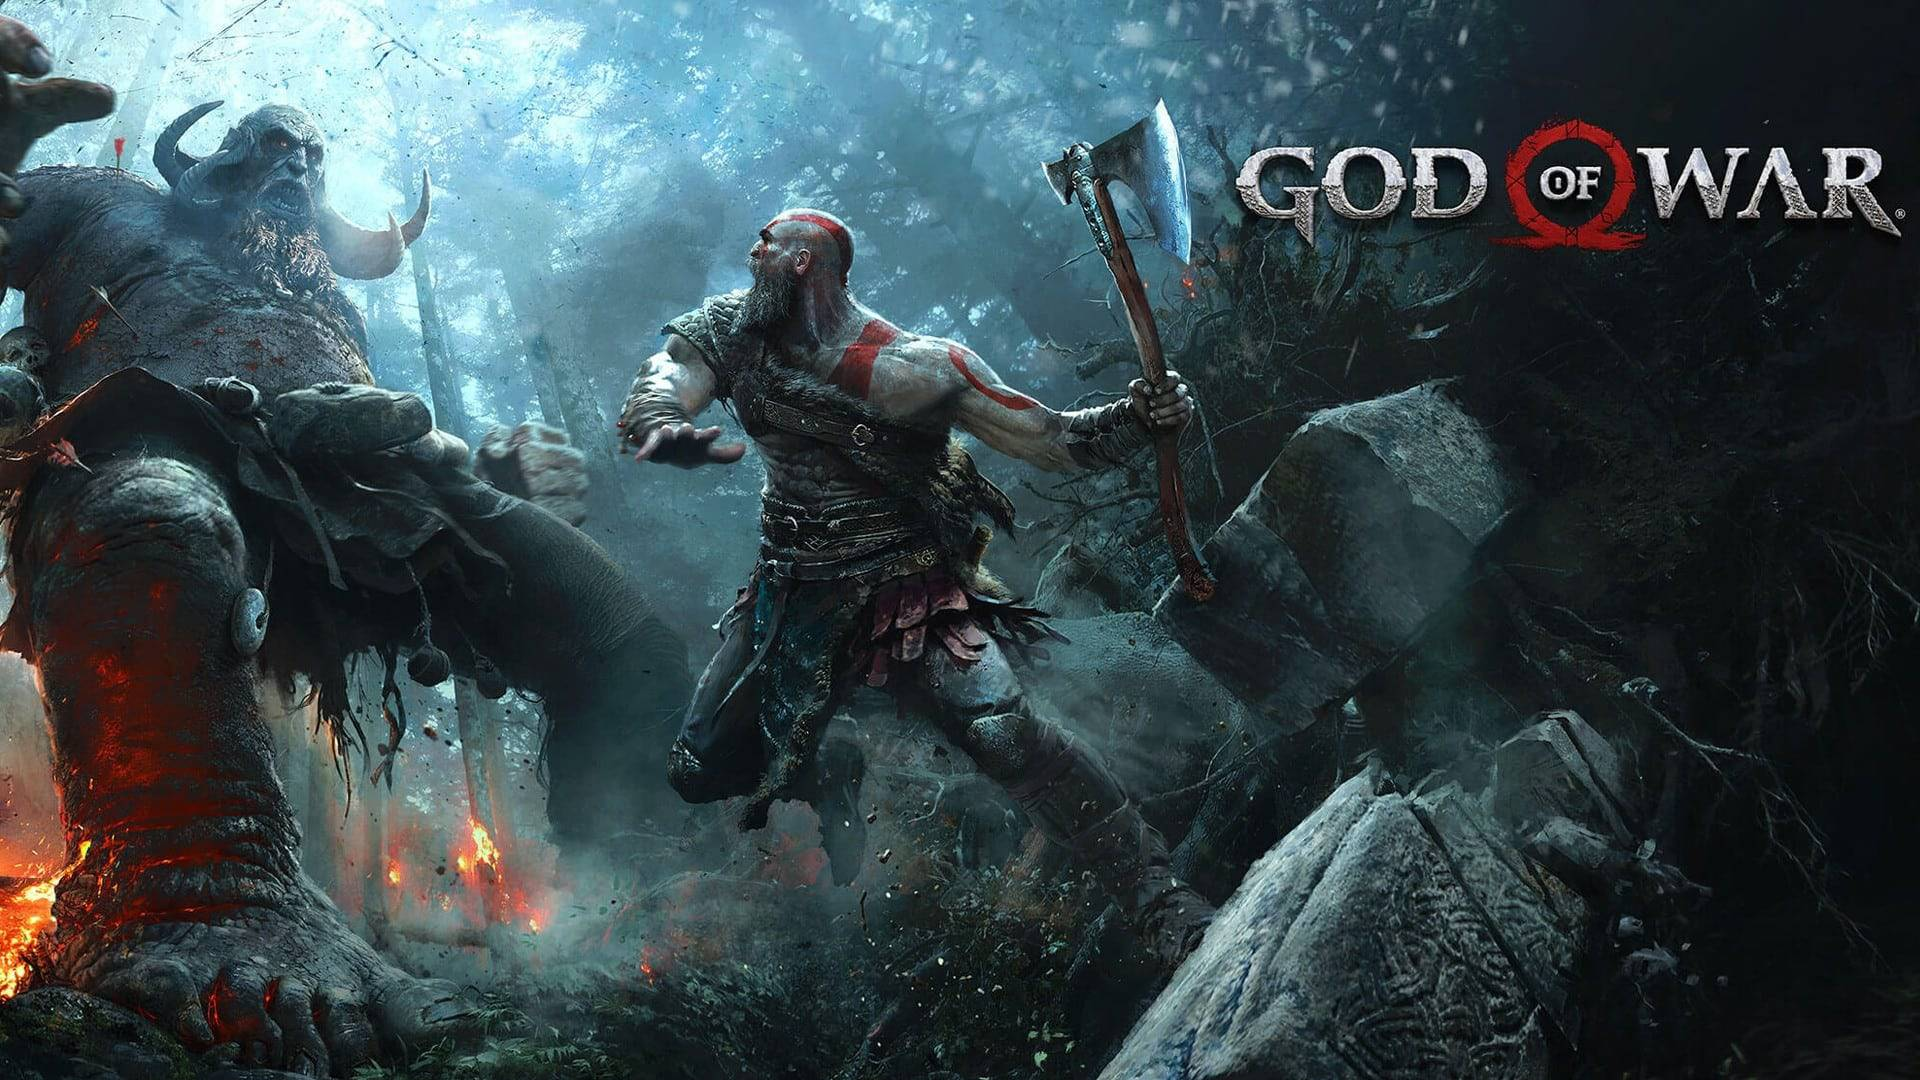 God of War – The Geekdom Review